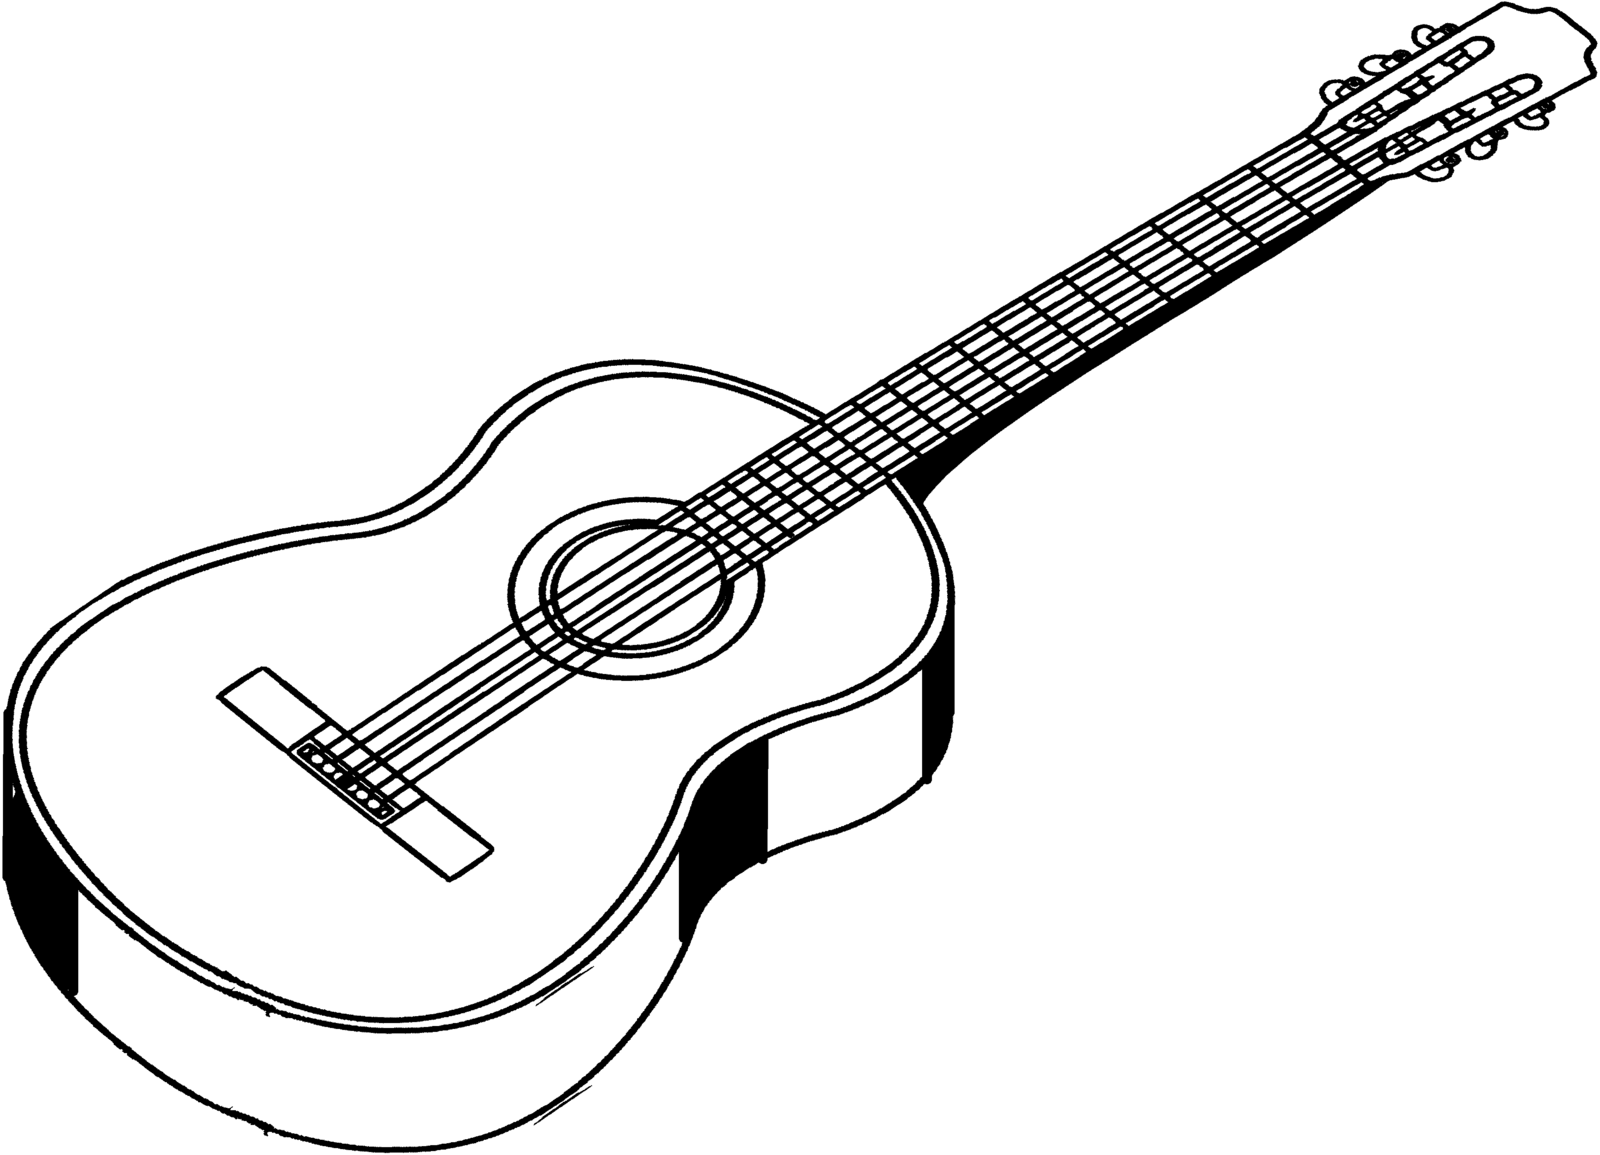 drawing guitar big guitar outline drawing at getdrawings free download guitar drawing